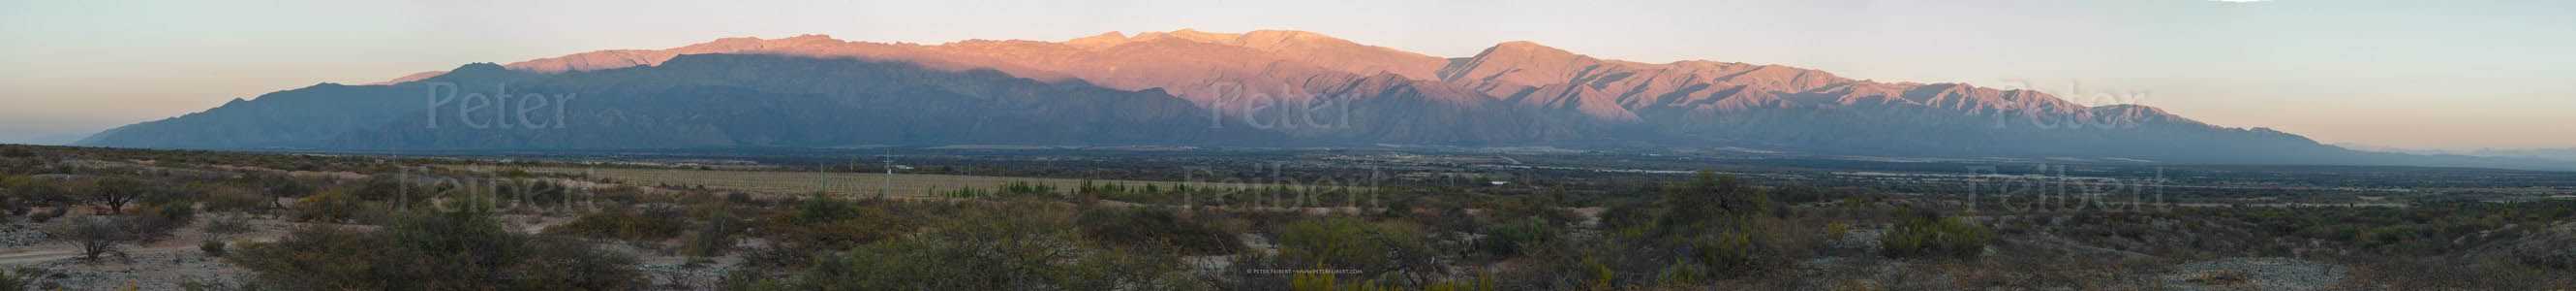 Early morning, environs of the town of Cafayate, Calchaquí valley, Salta, Argentina.